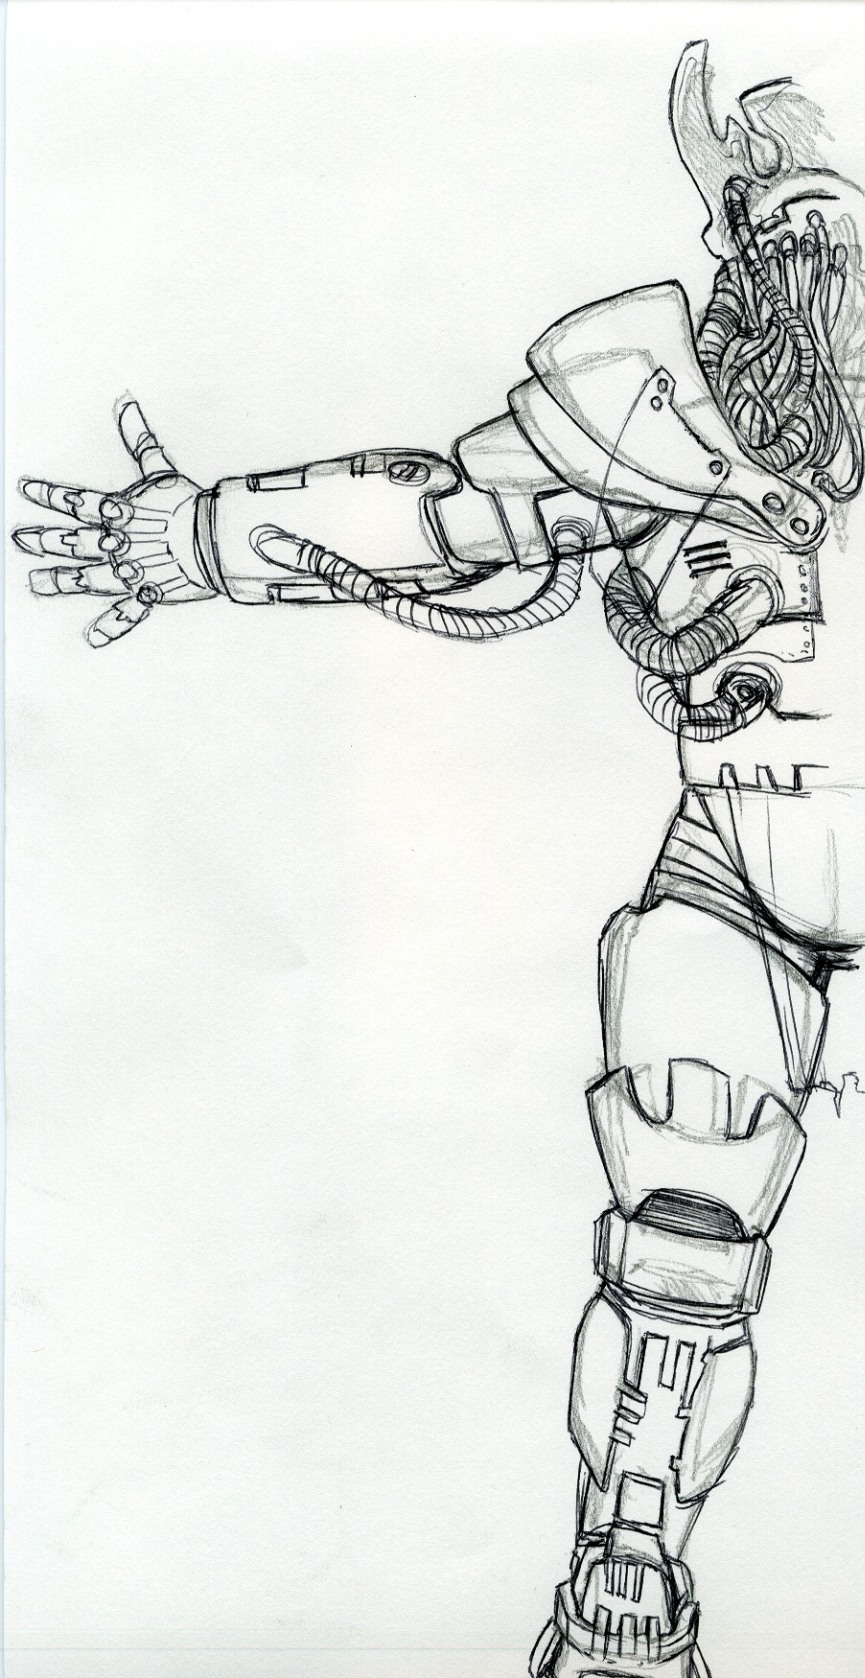 Concept sketch for back of Power Armor suit